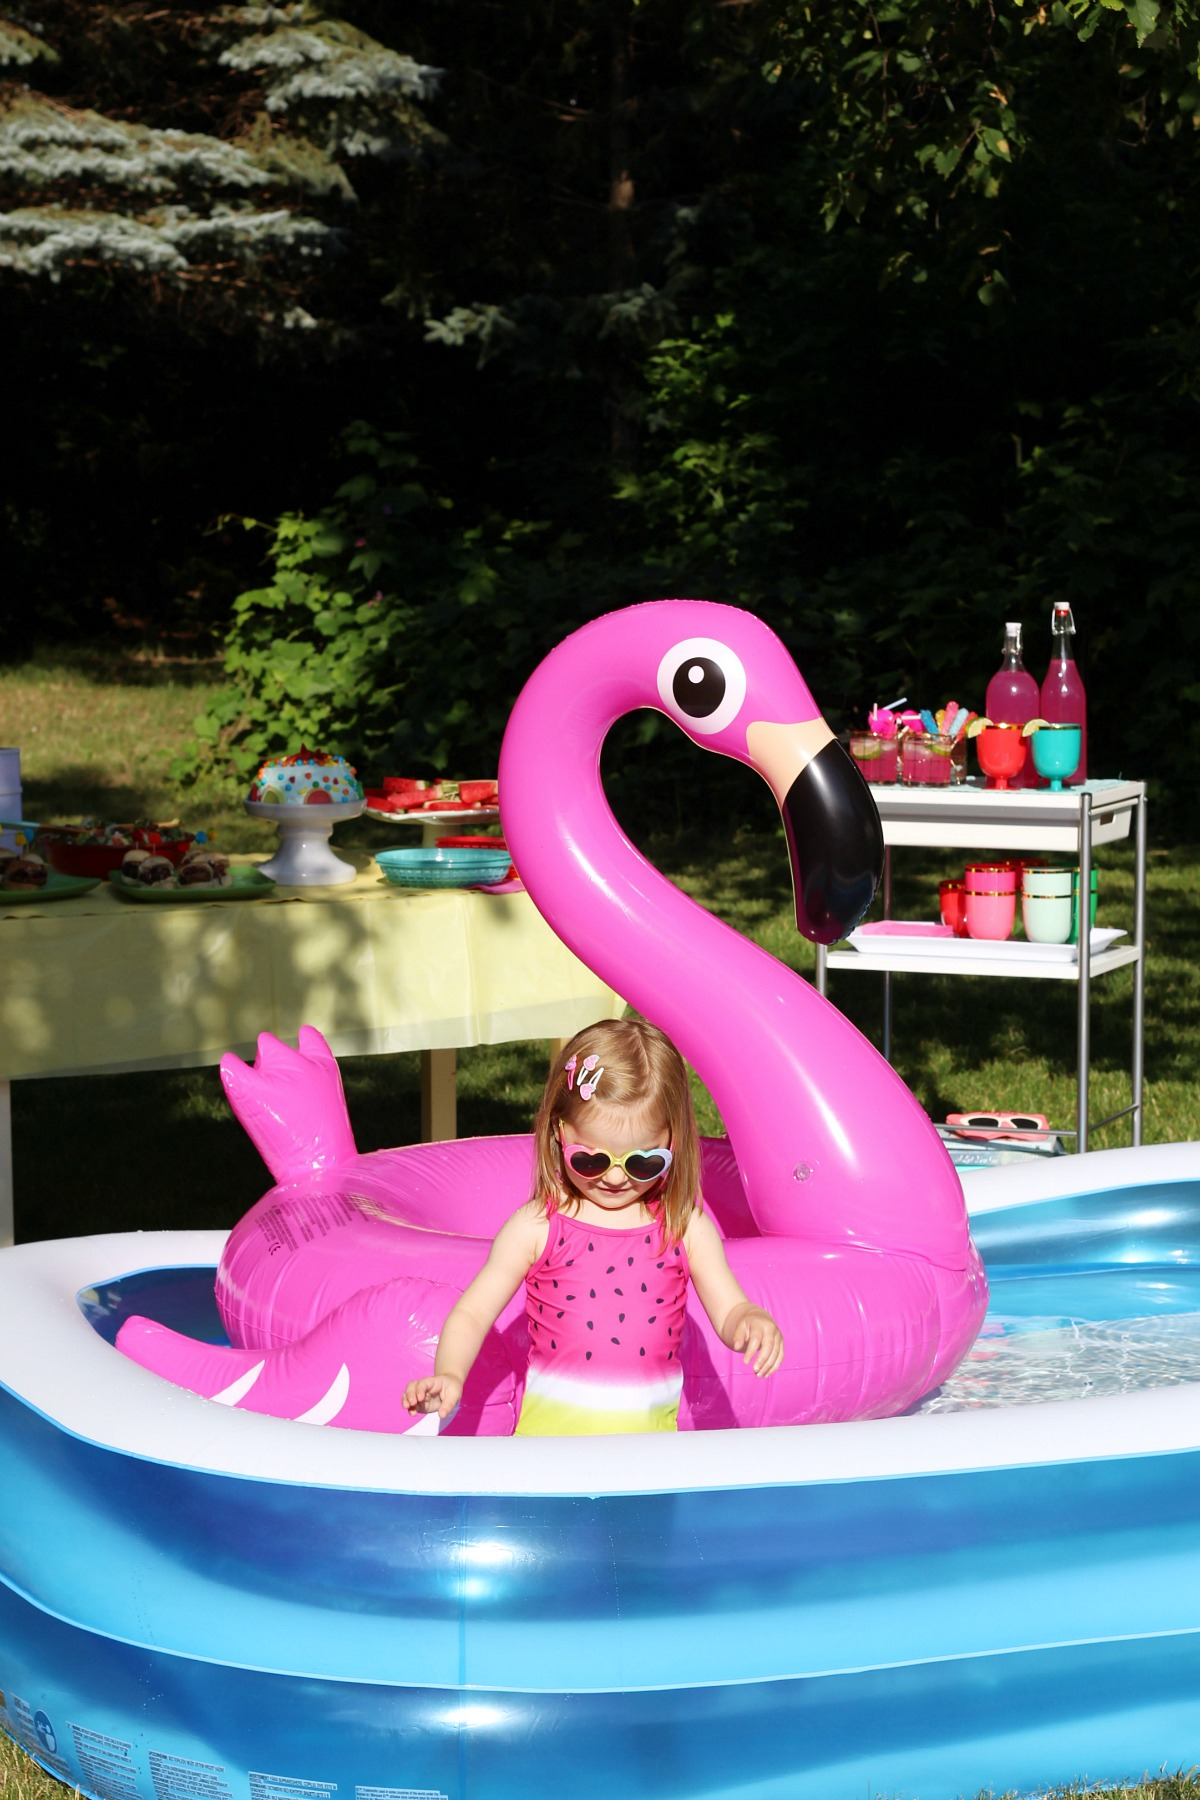 Summer fun pool party with pink flamingo pool float